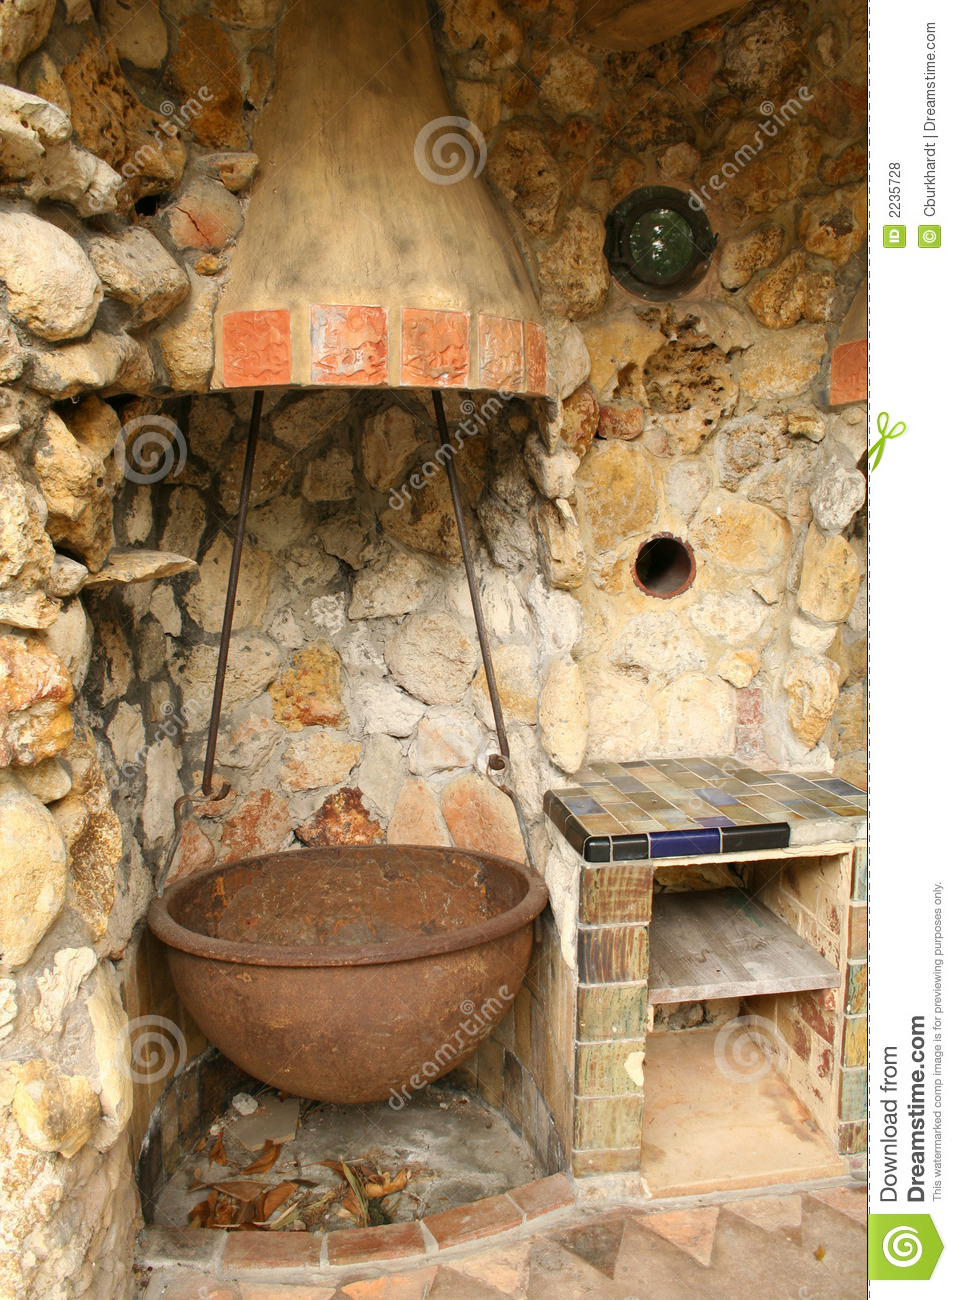 Old Outdoor Kitchen Royalty Free Stock Photos Image 2235728